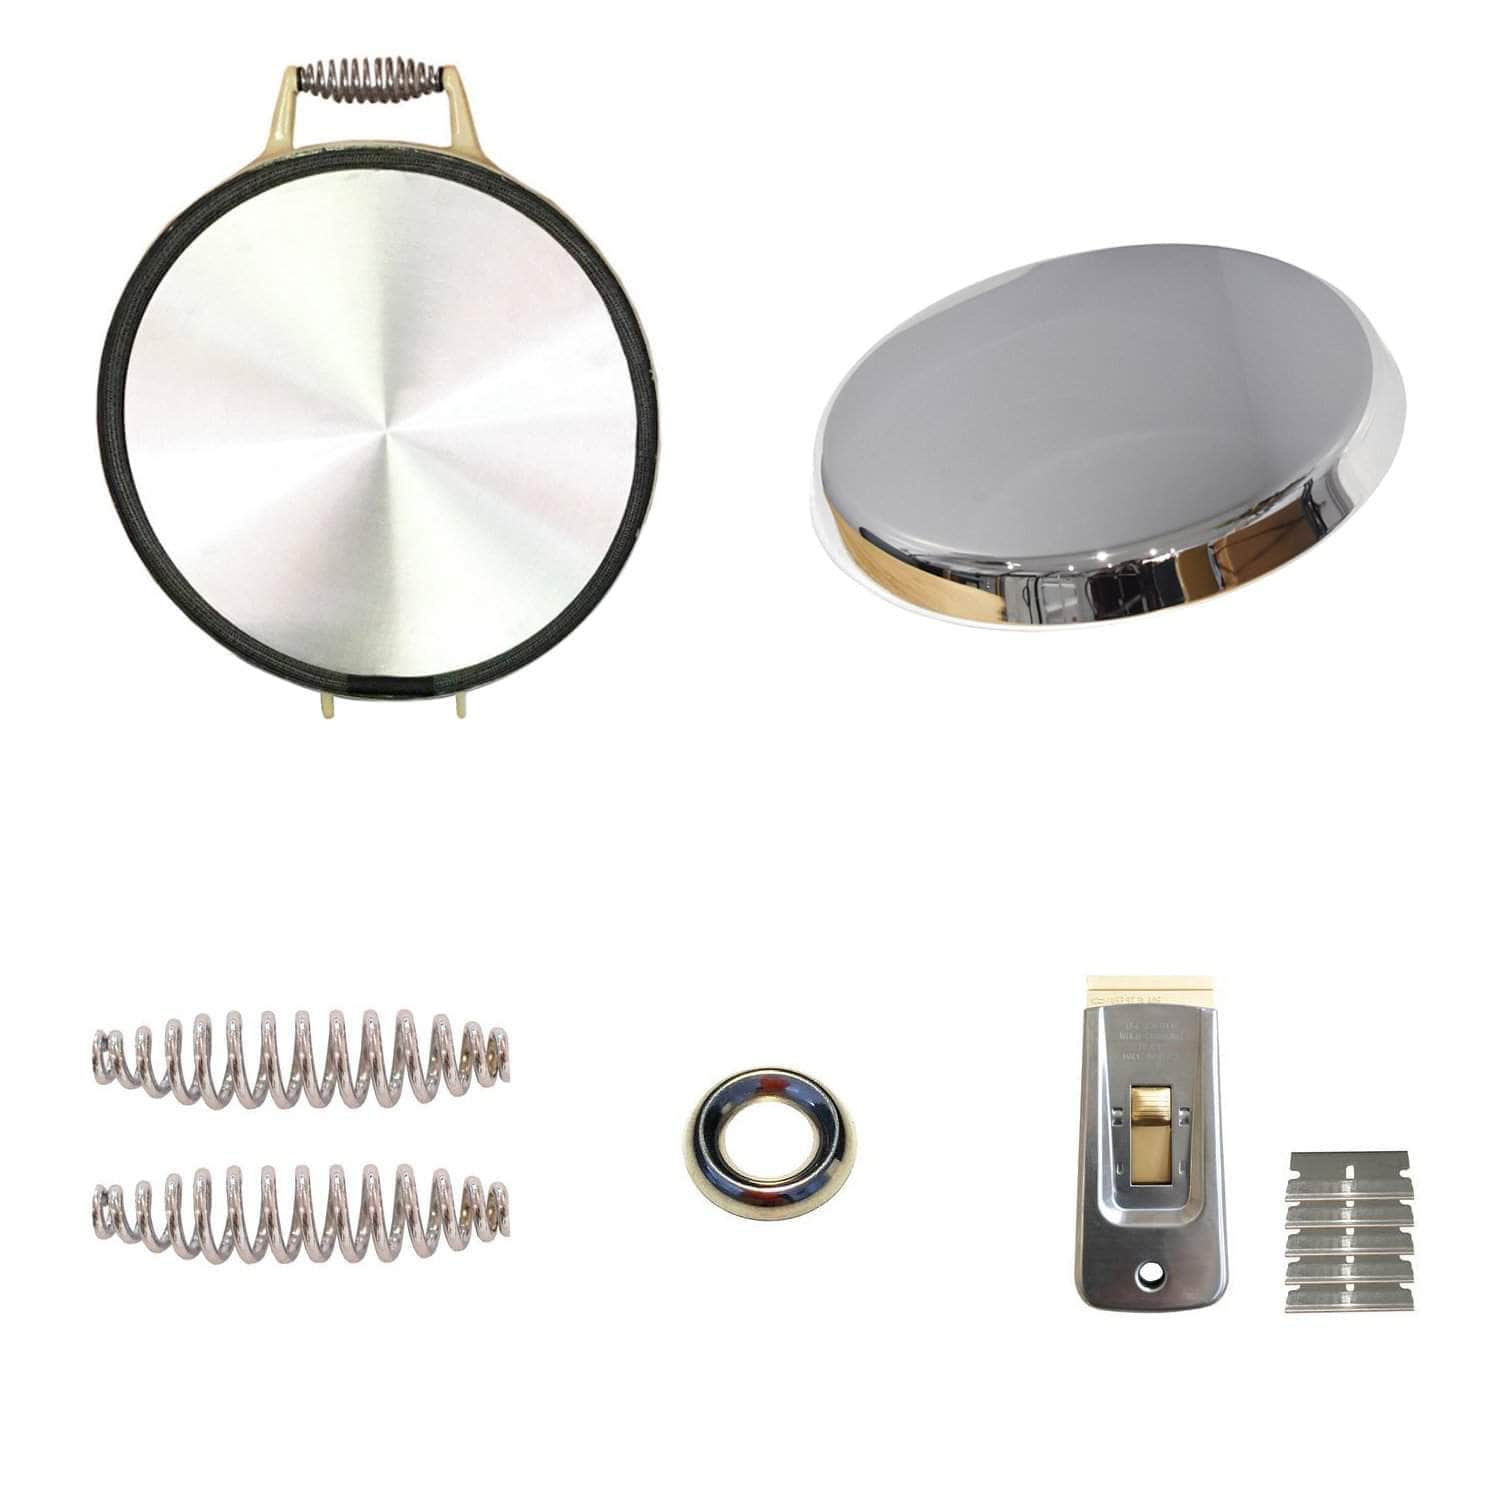 *NEW* Complete lid refurb kit for use with Aga range cookers